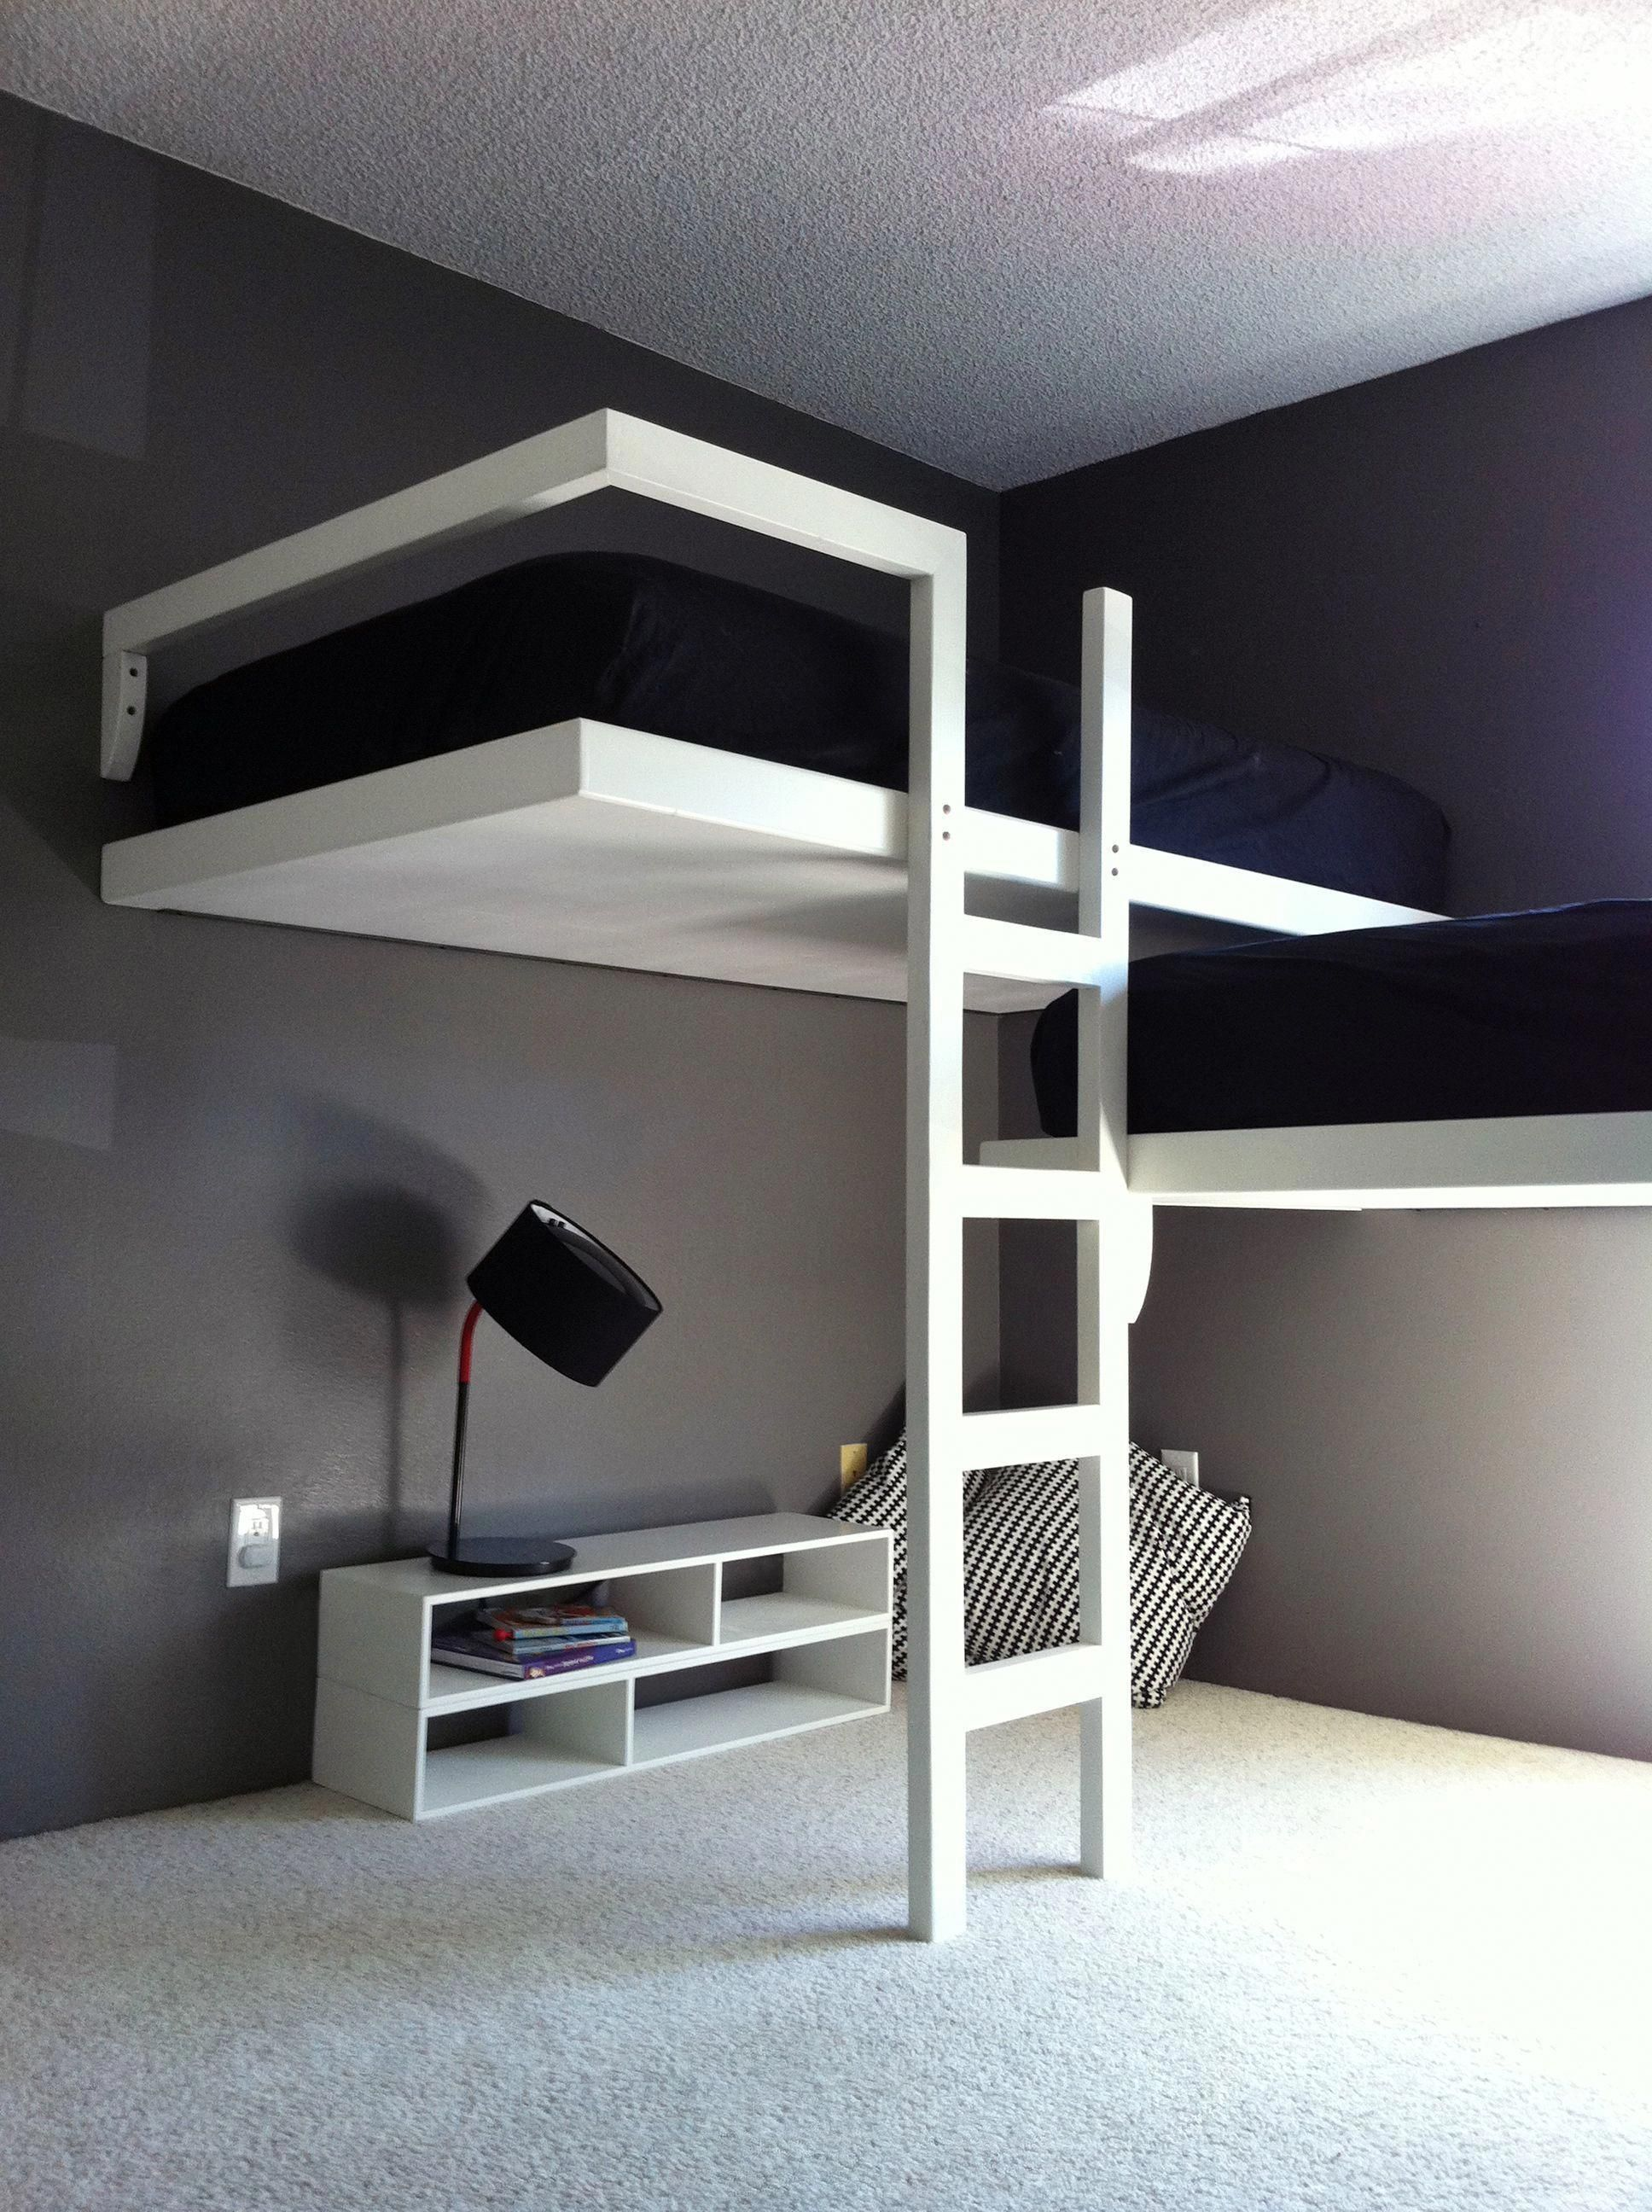 Design Fab Llc Cool Puter Setups And Gaming Loft Bed Setup Custom Bunk Beds Simple Bed For Children Or Cabins Custom Bunk Beds Cool Loft Beds Cool Bunk Beds